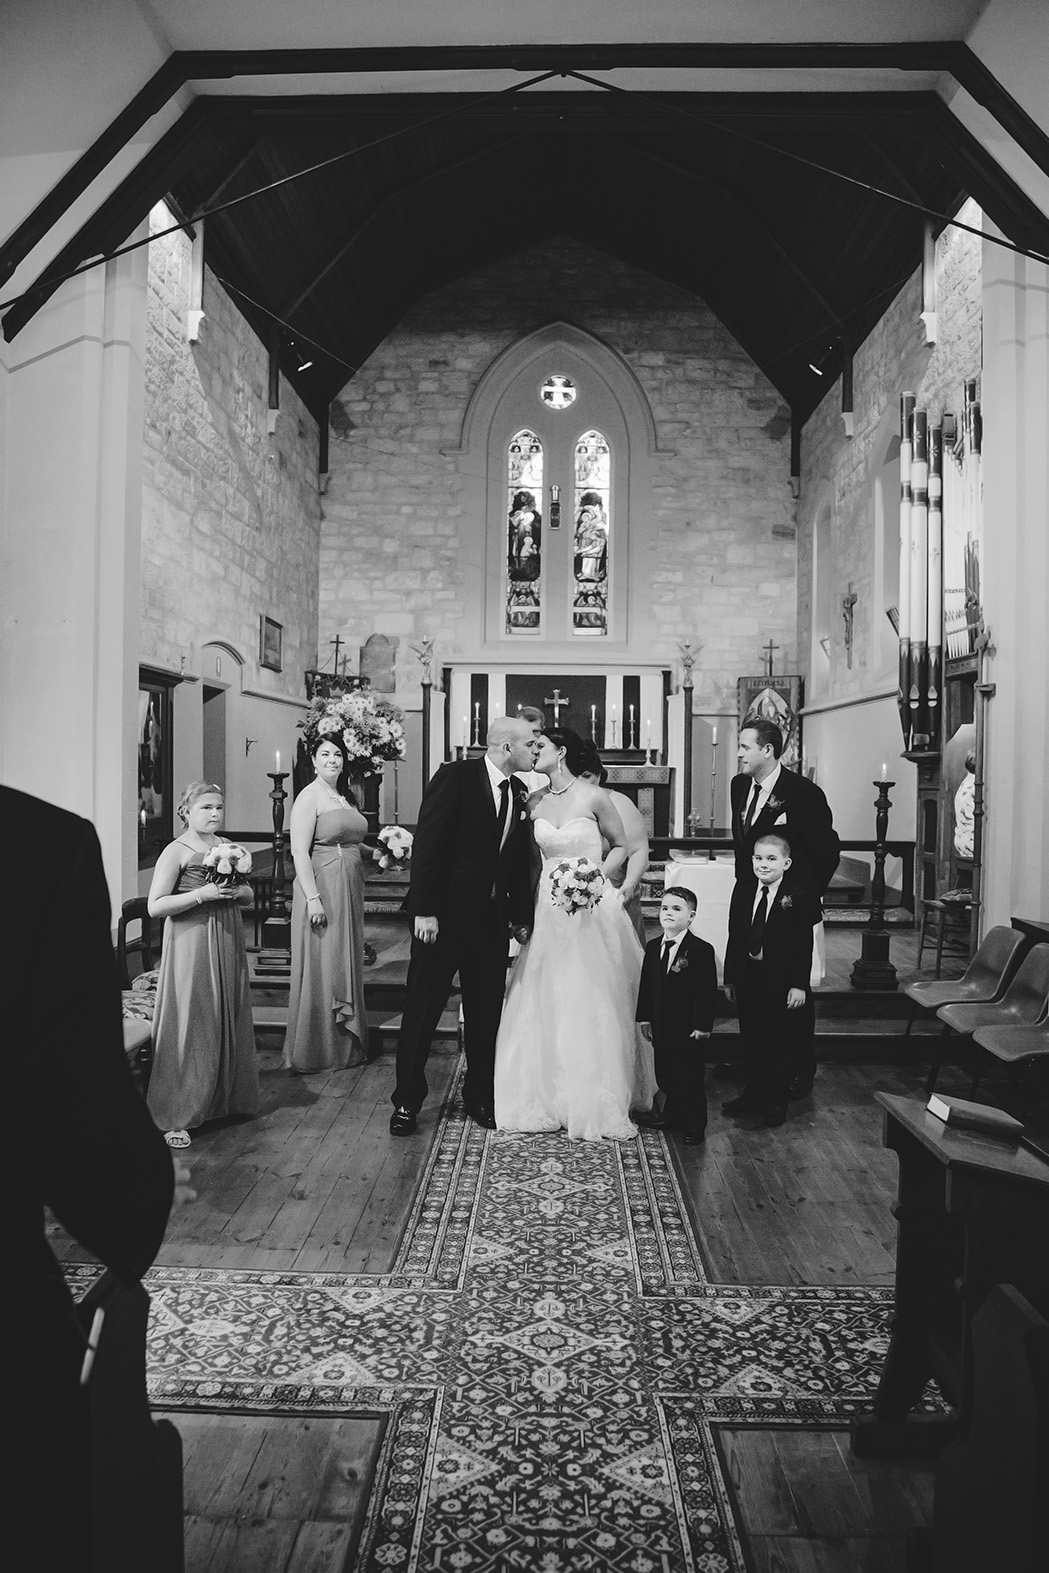 Friendly Adelaide Wedding Photographer 007 black & white.jpg